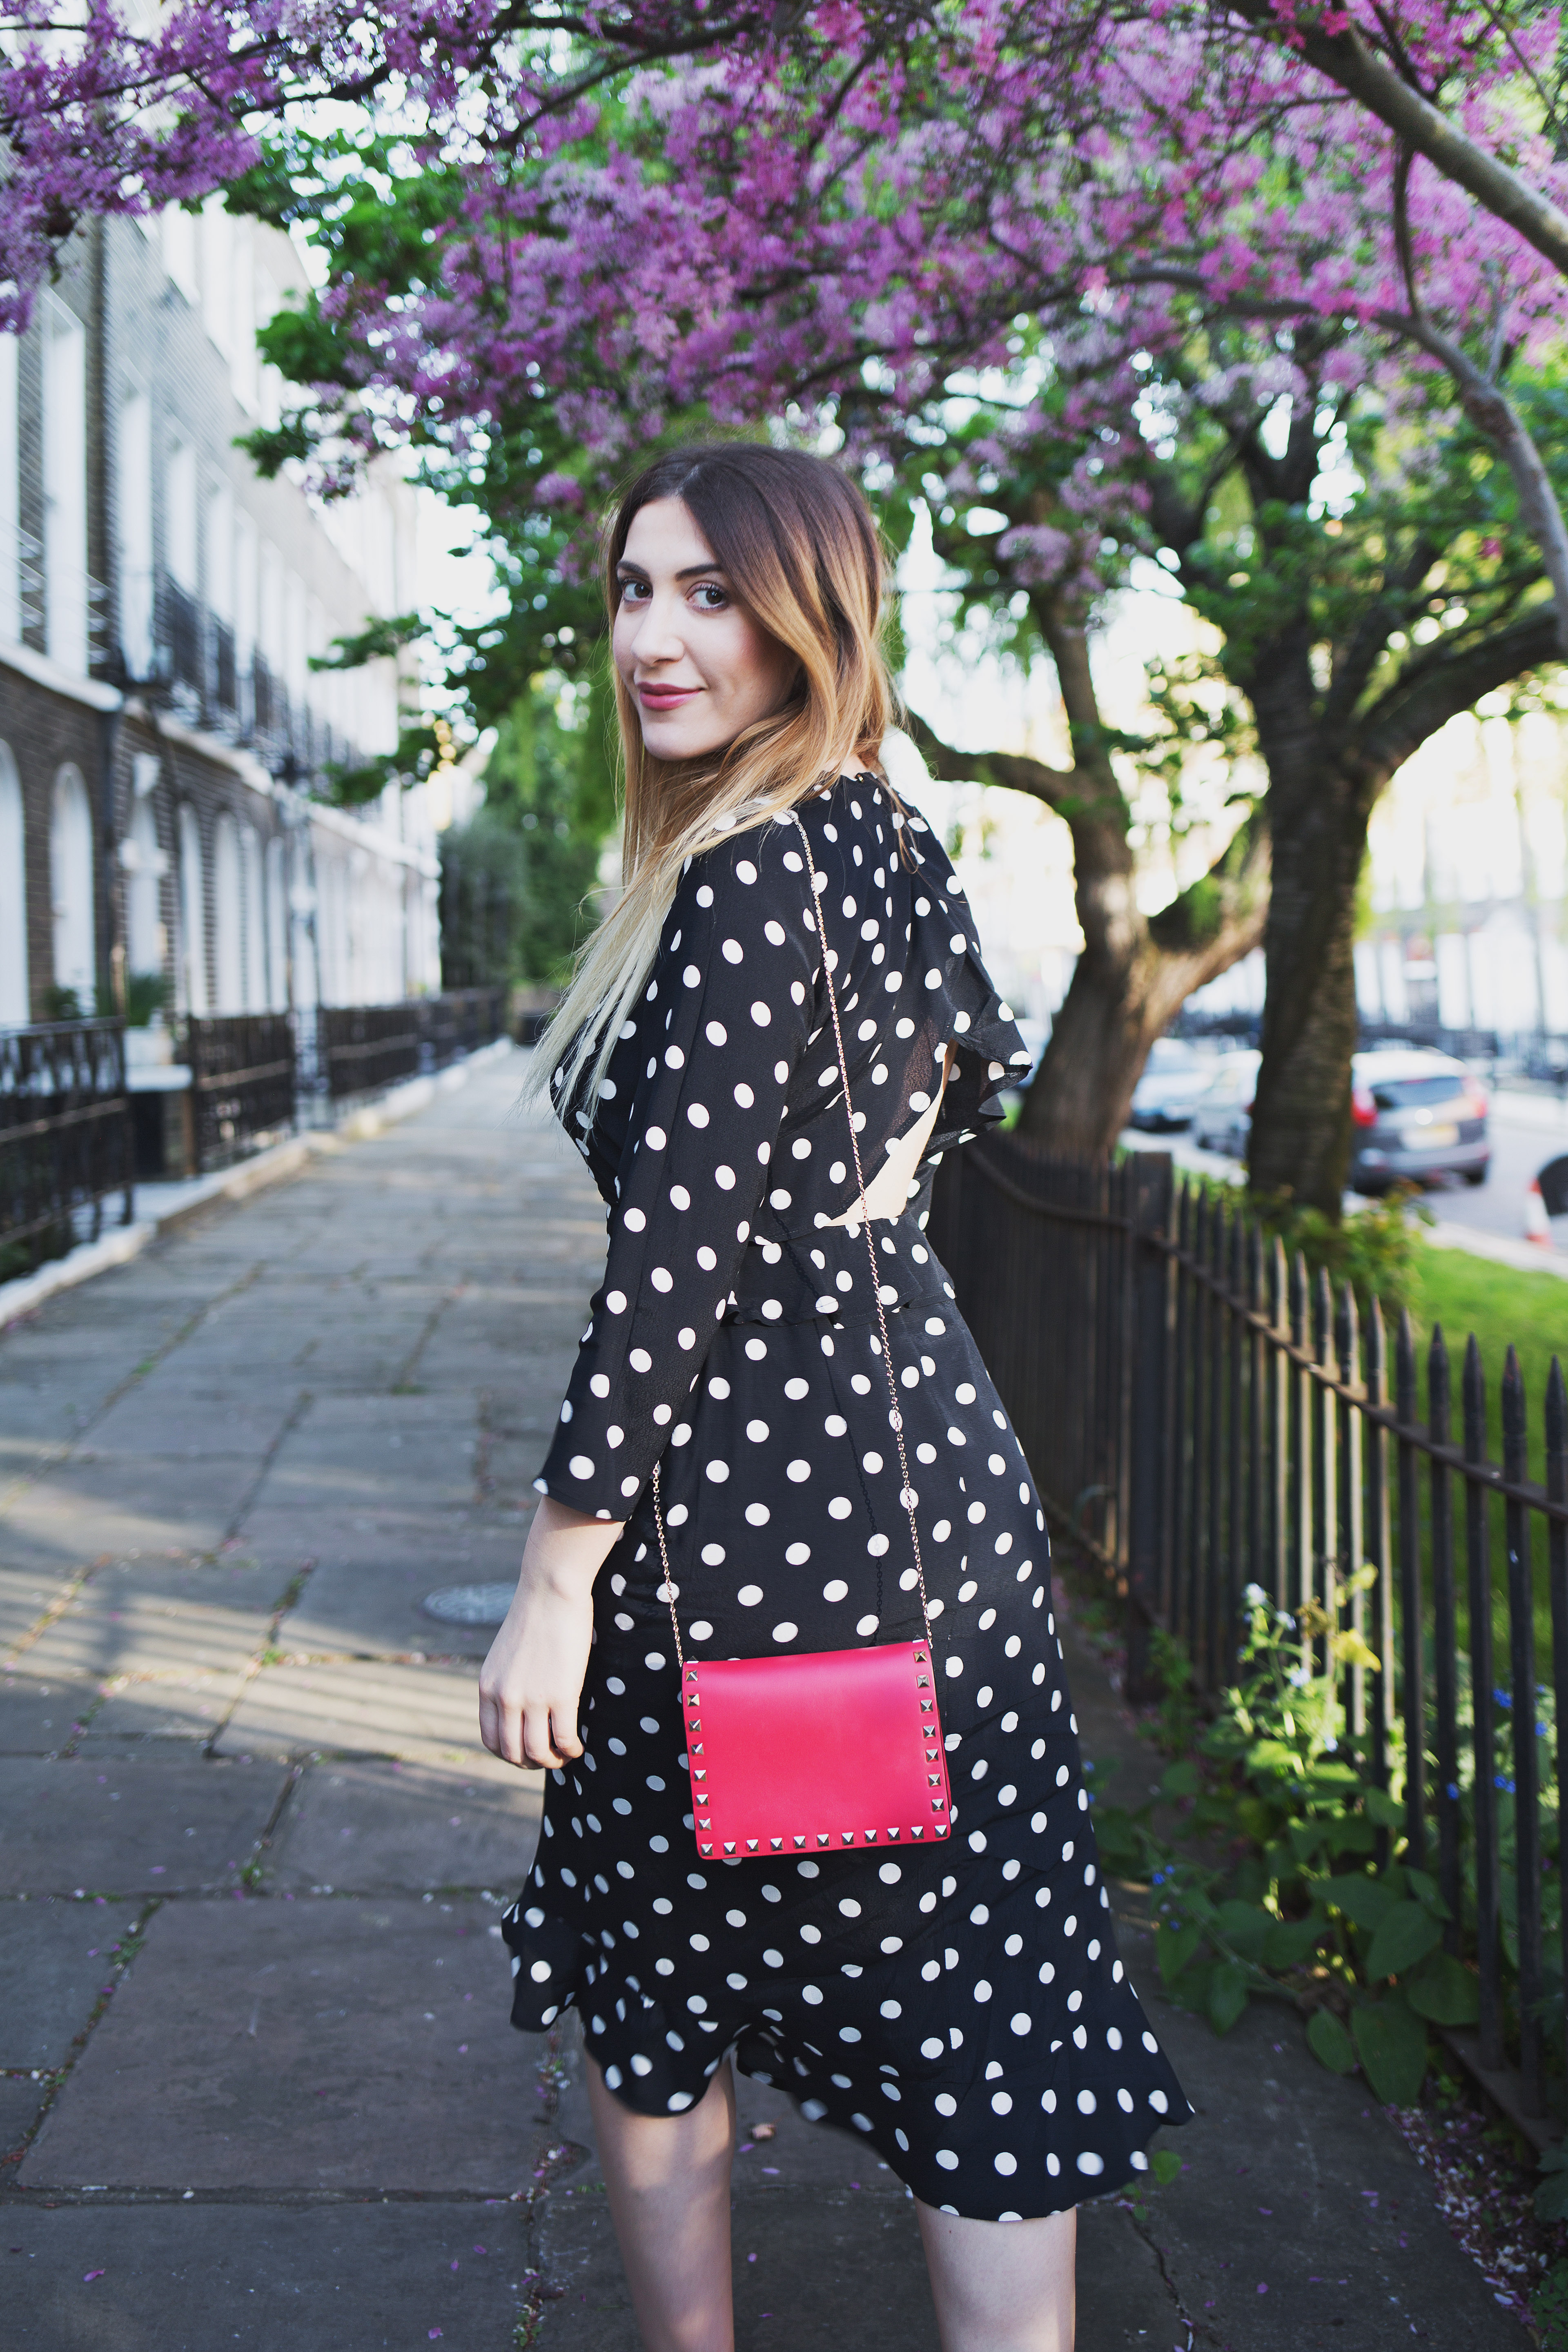 SS17 Trend Must Have: A Polka Dot Dress